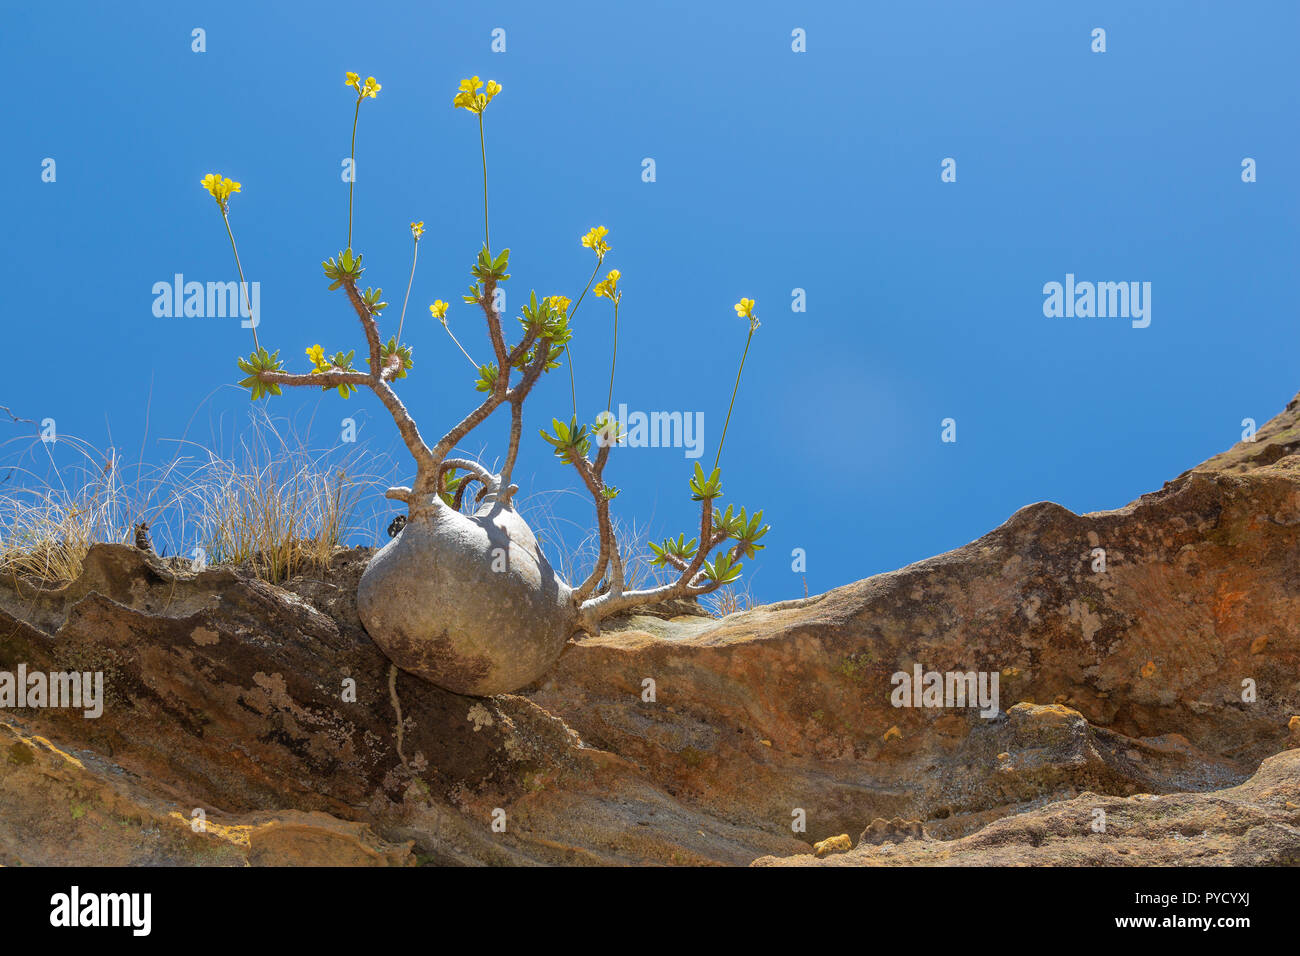 Elephants Foot plant, Pachypodium rosulatum, Isalo National Park, Central Madagascar - Stock Image